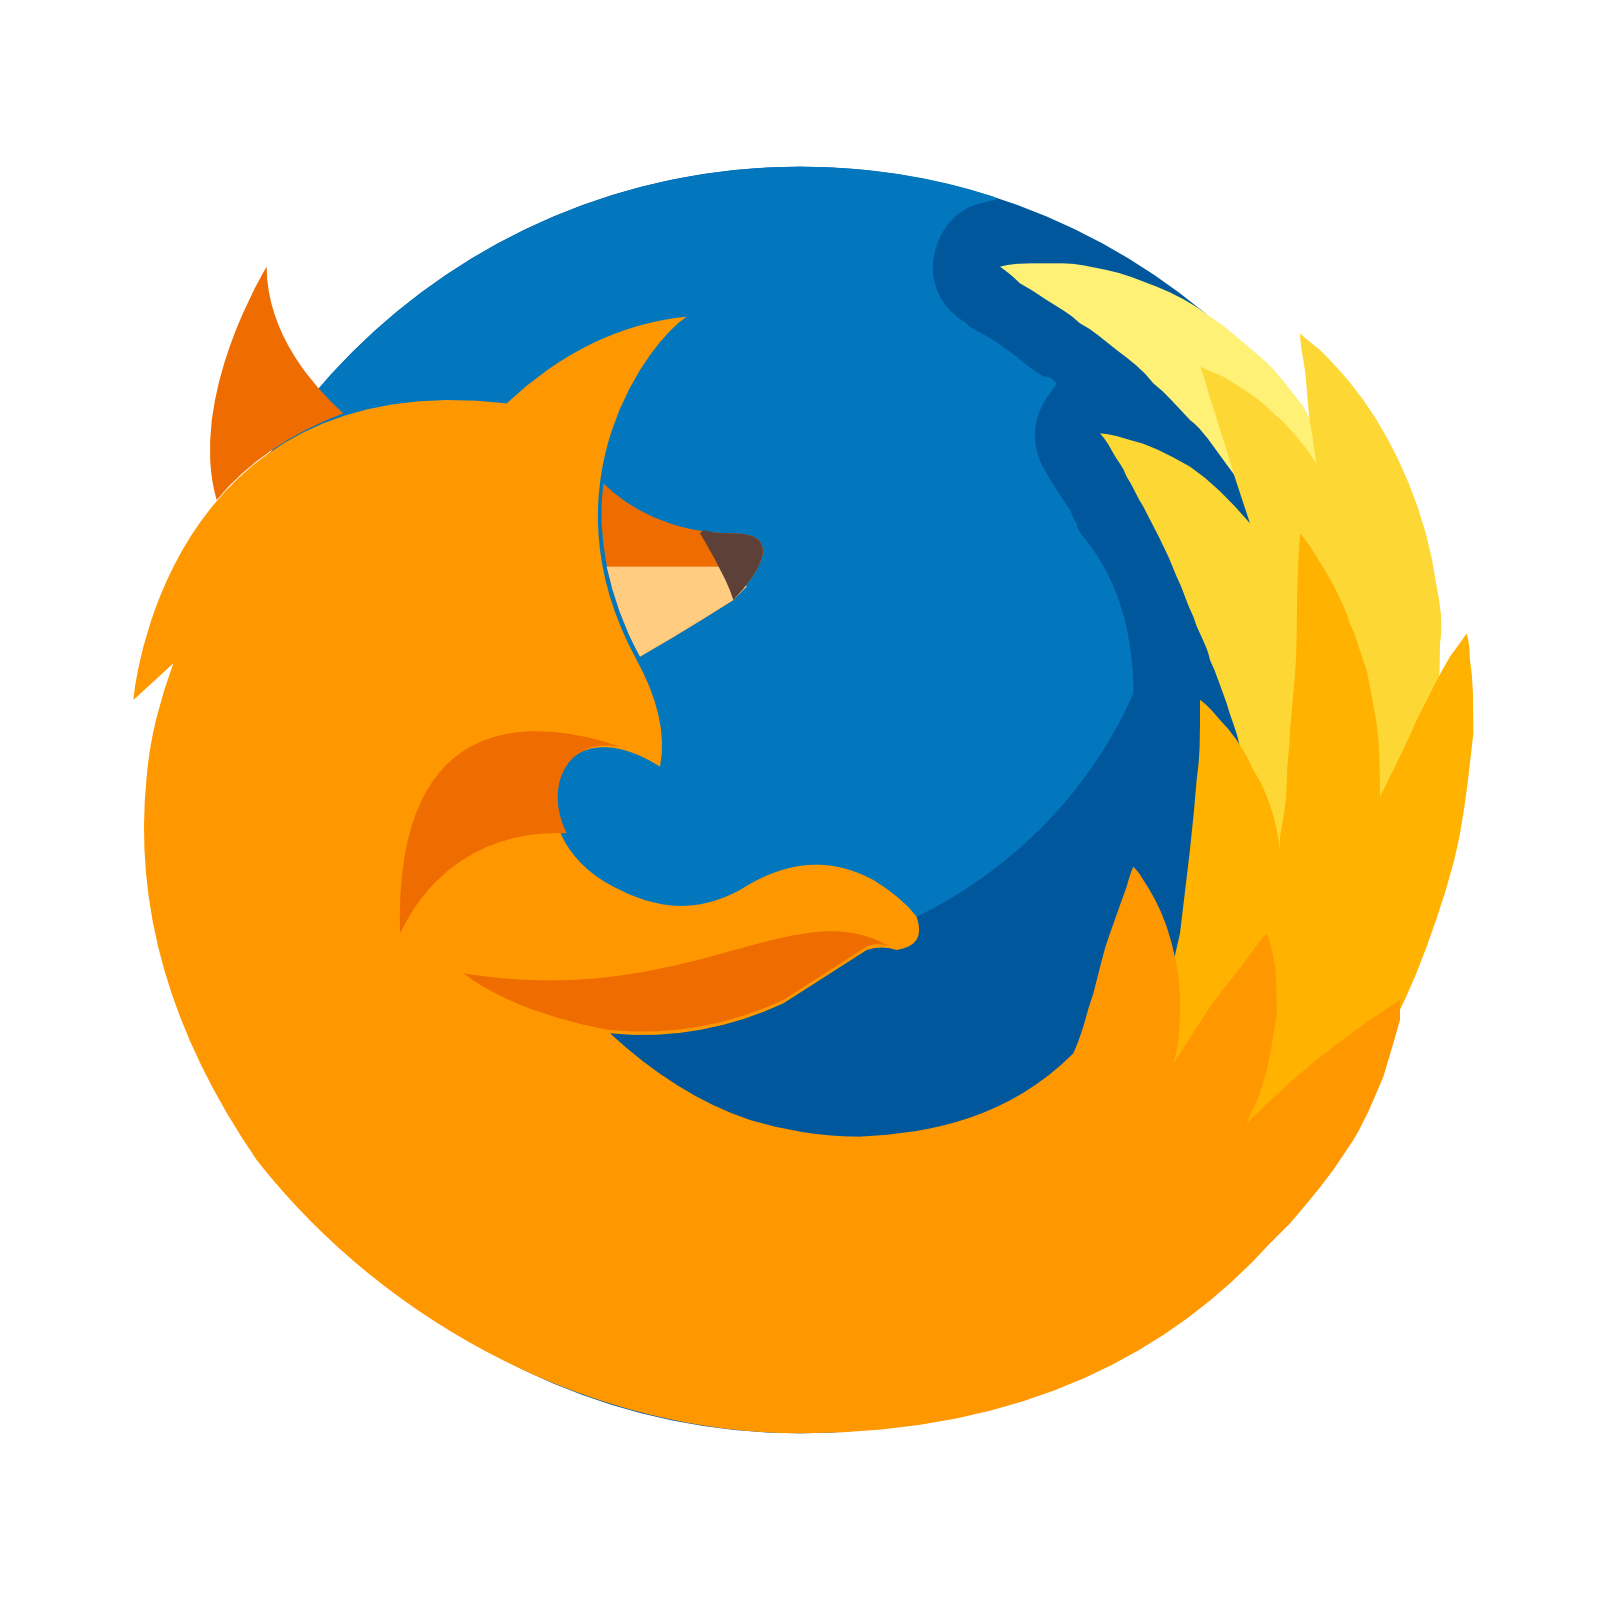 Icon Png Mozilla Firefox